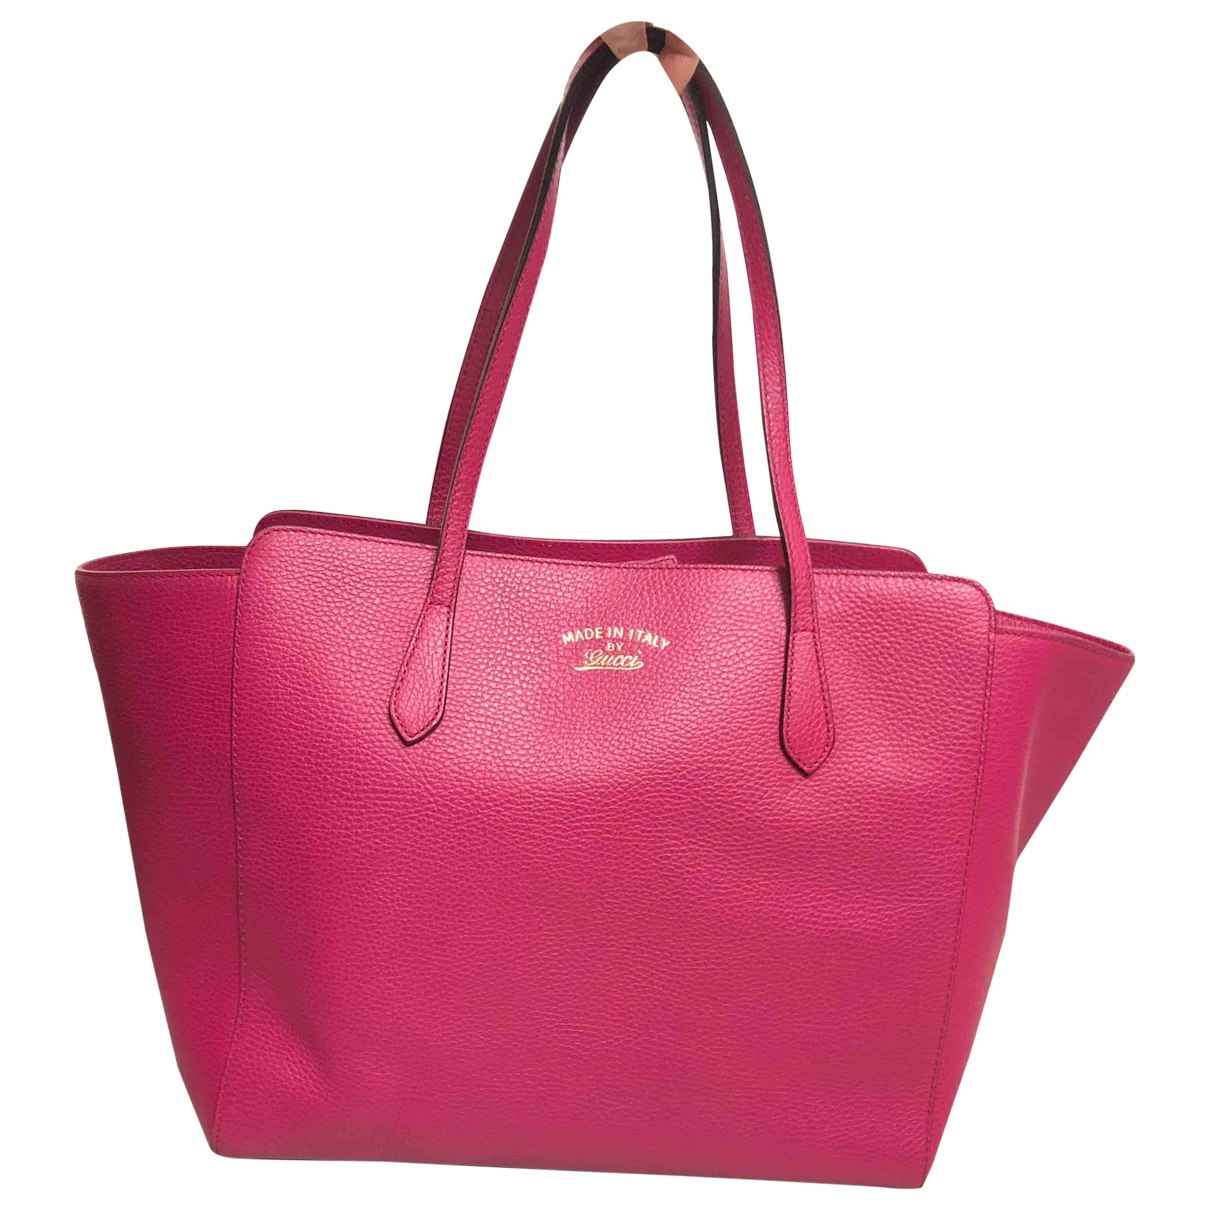 Gucci Swing Pink Leather handbag for Women \N